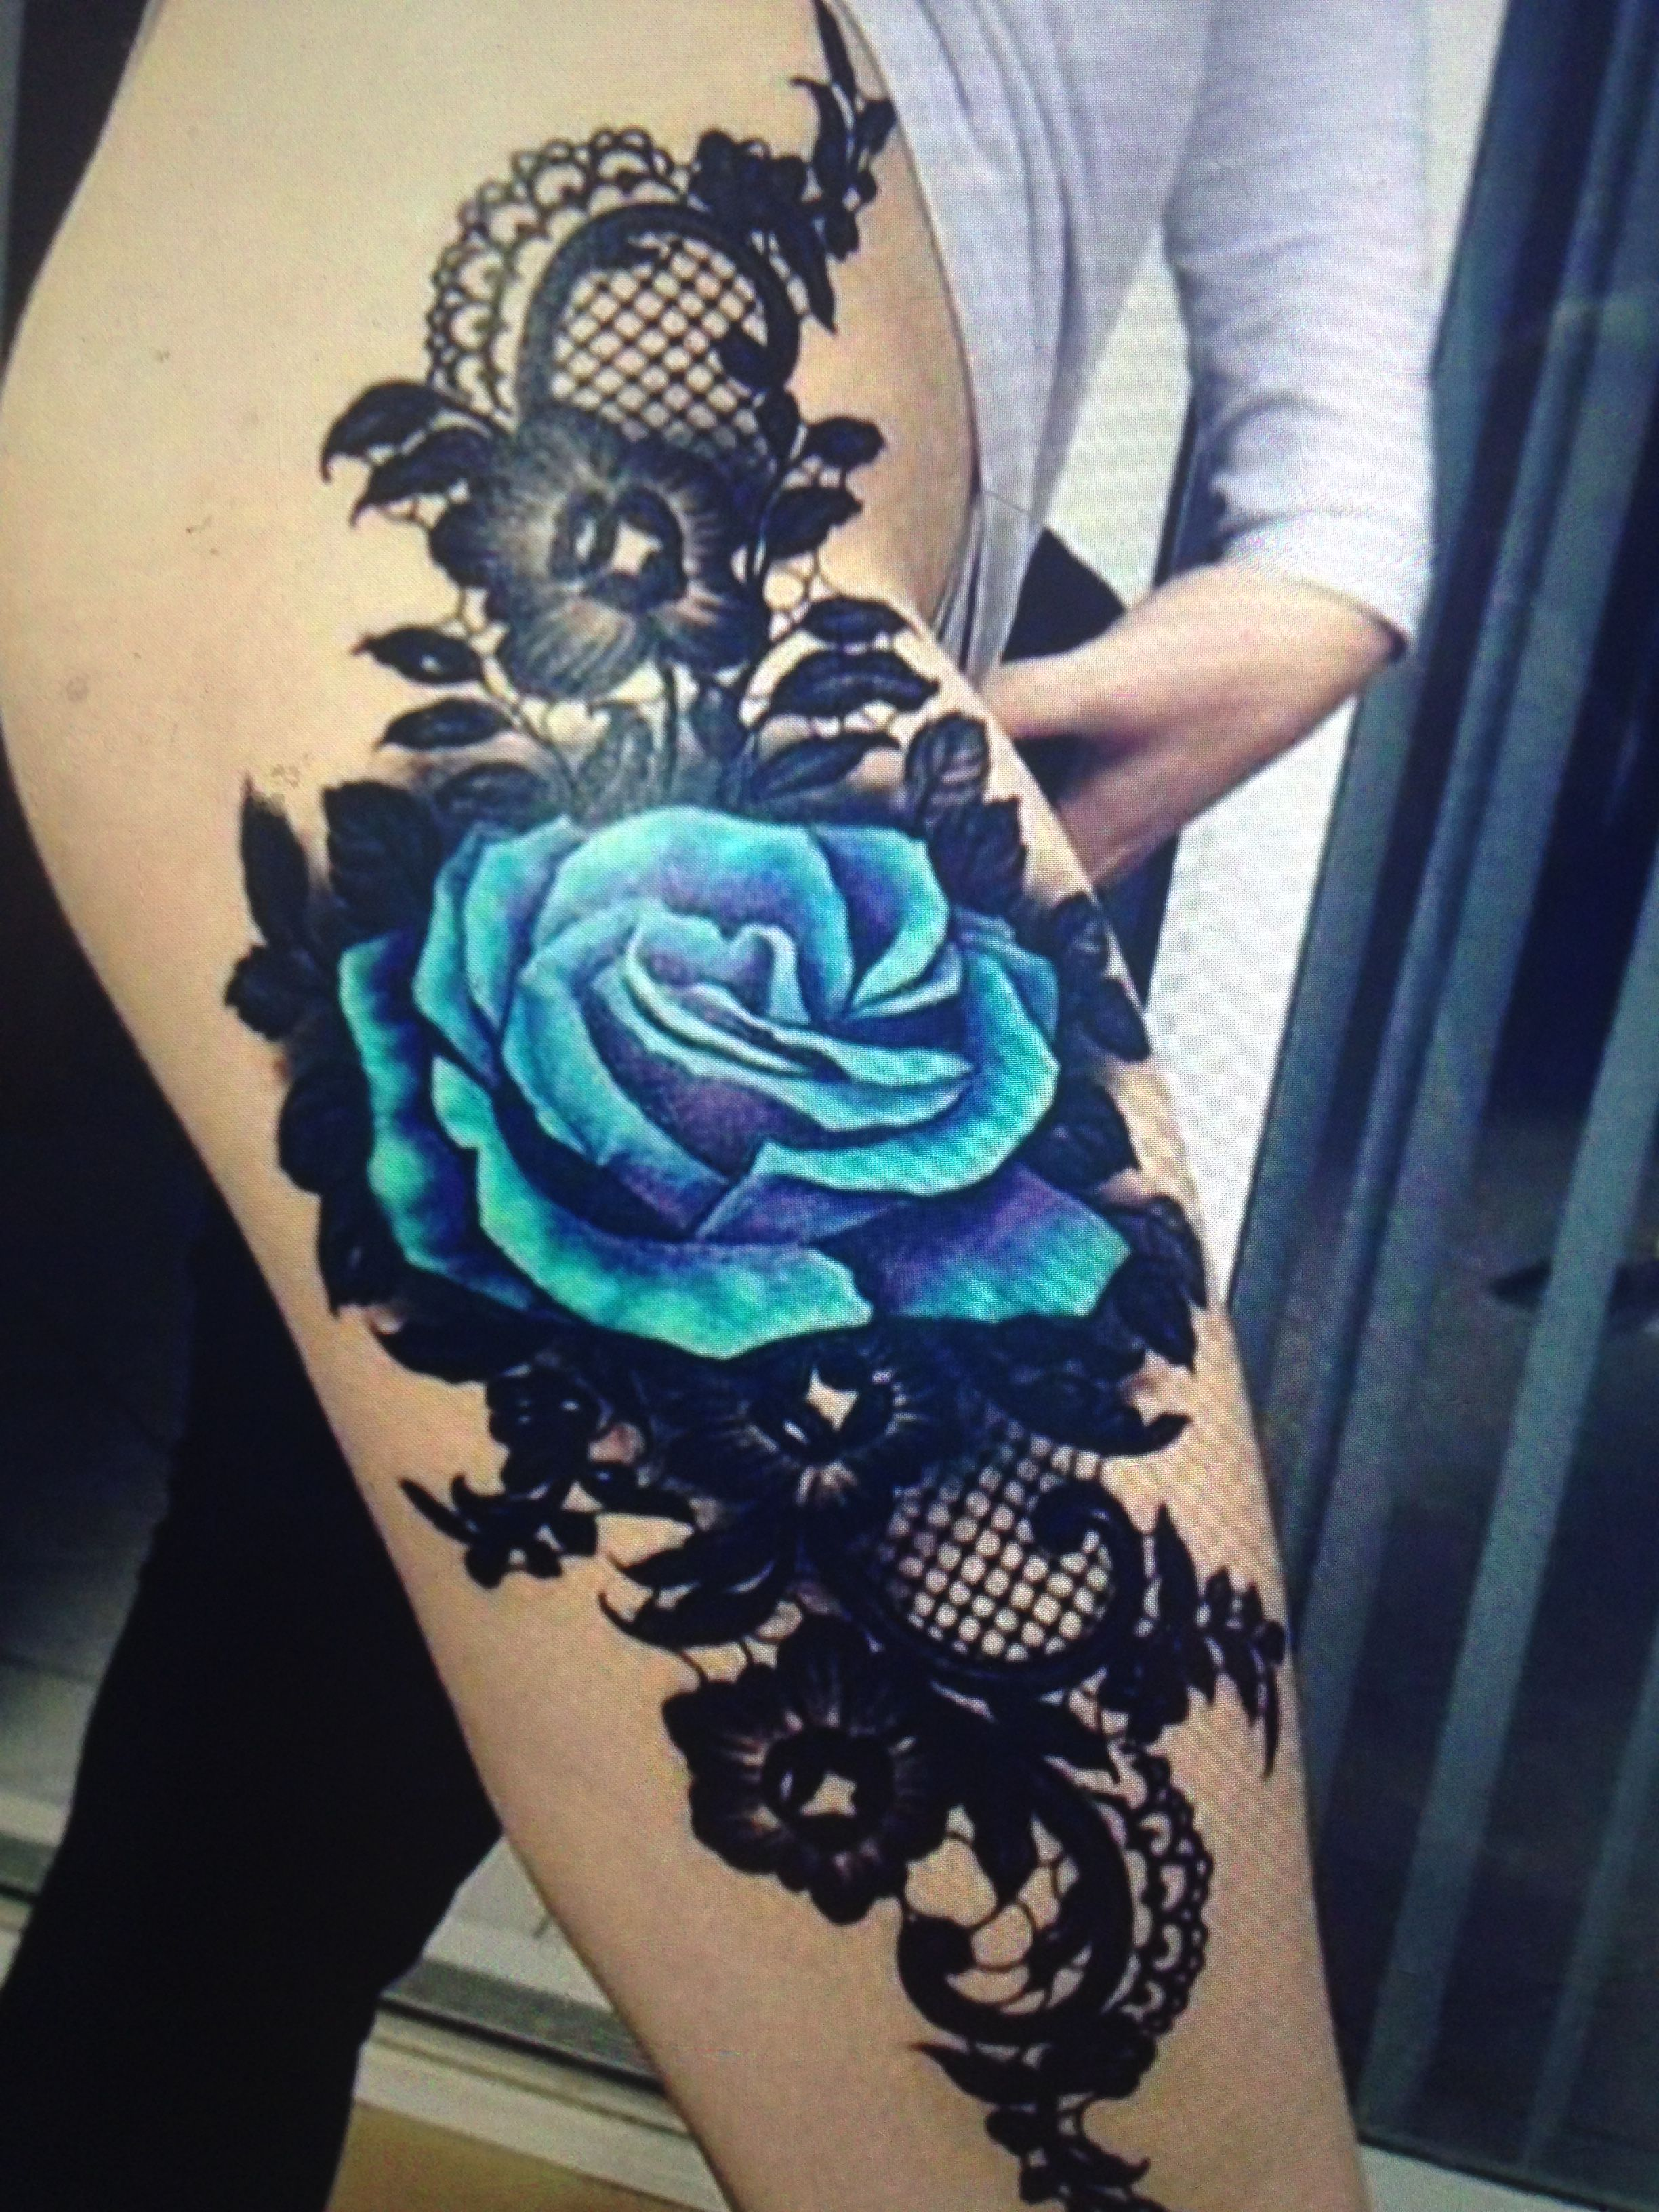 Pin by Cassie James on Tattoo's | Flower thigh tattoos ...